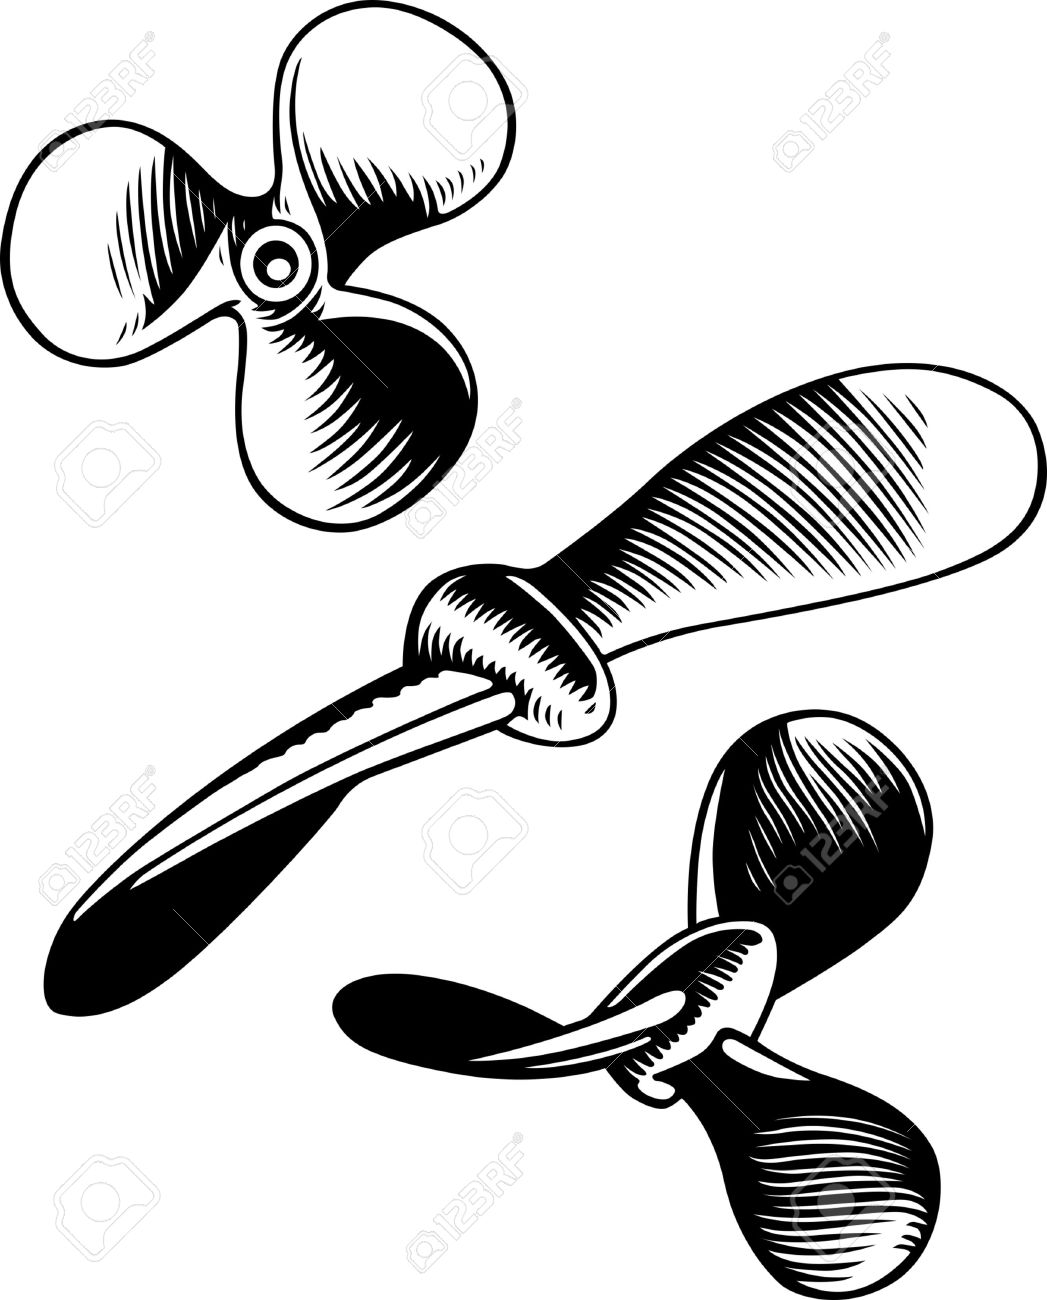 Propellers On White Royalty Free Cliparts, Vectors, And Stock.